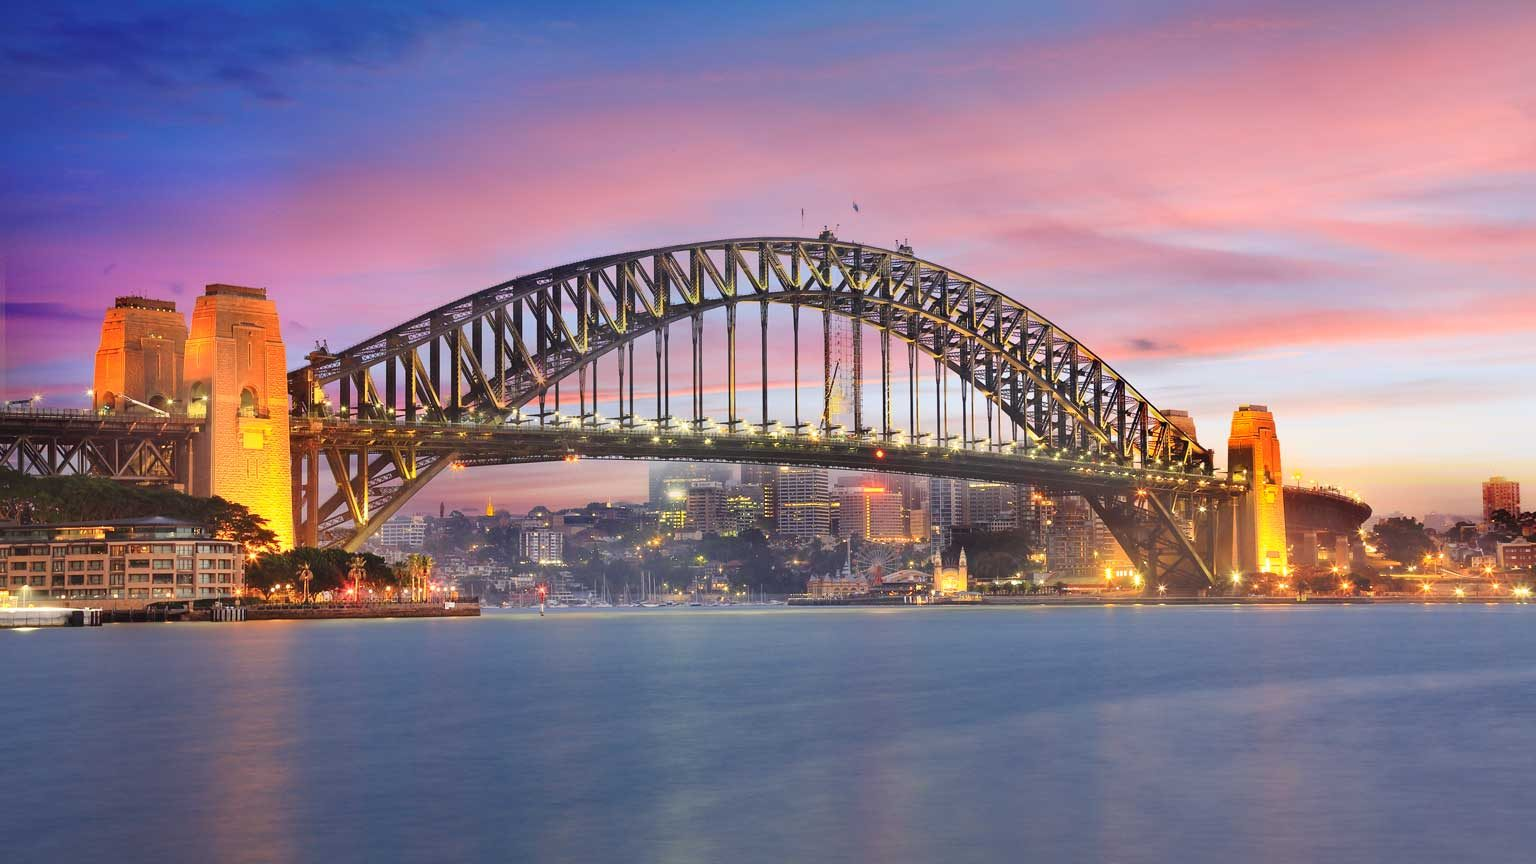 Sydney Harbour Bridge Sunrise